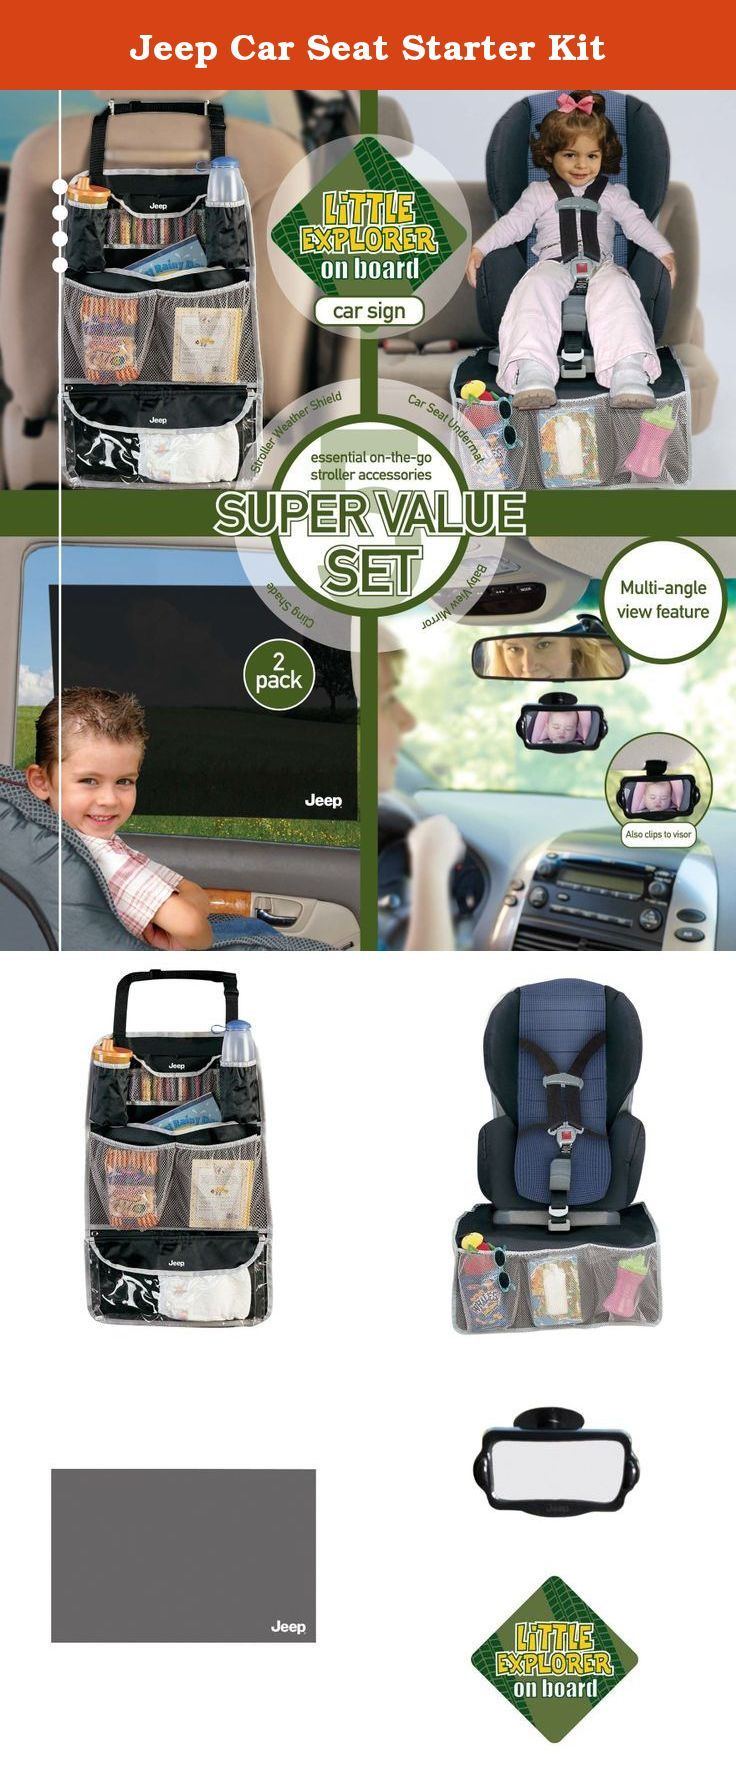 Jeep Car Seat Starter Kit. The Jeep Car Seat Starter Kit is a GREAT VALUE as you get all the items in one package: Jeep Back Seat Organizer, Jeep Car Seat Undermat, Jeep Cling Sun Shade (2 pack) Jeep Baby View Mirror and Jeep Little Adventurer On Board windo sign. The Jeep Car Seat Starter Kit has all the essentials you will for your little adventurer.